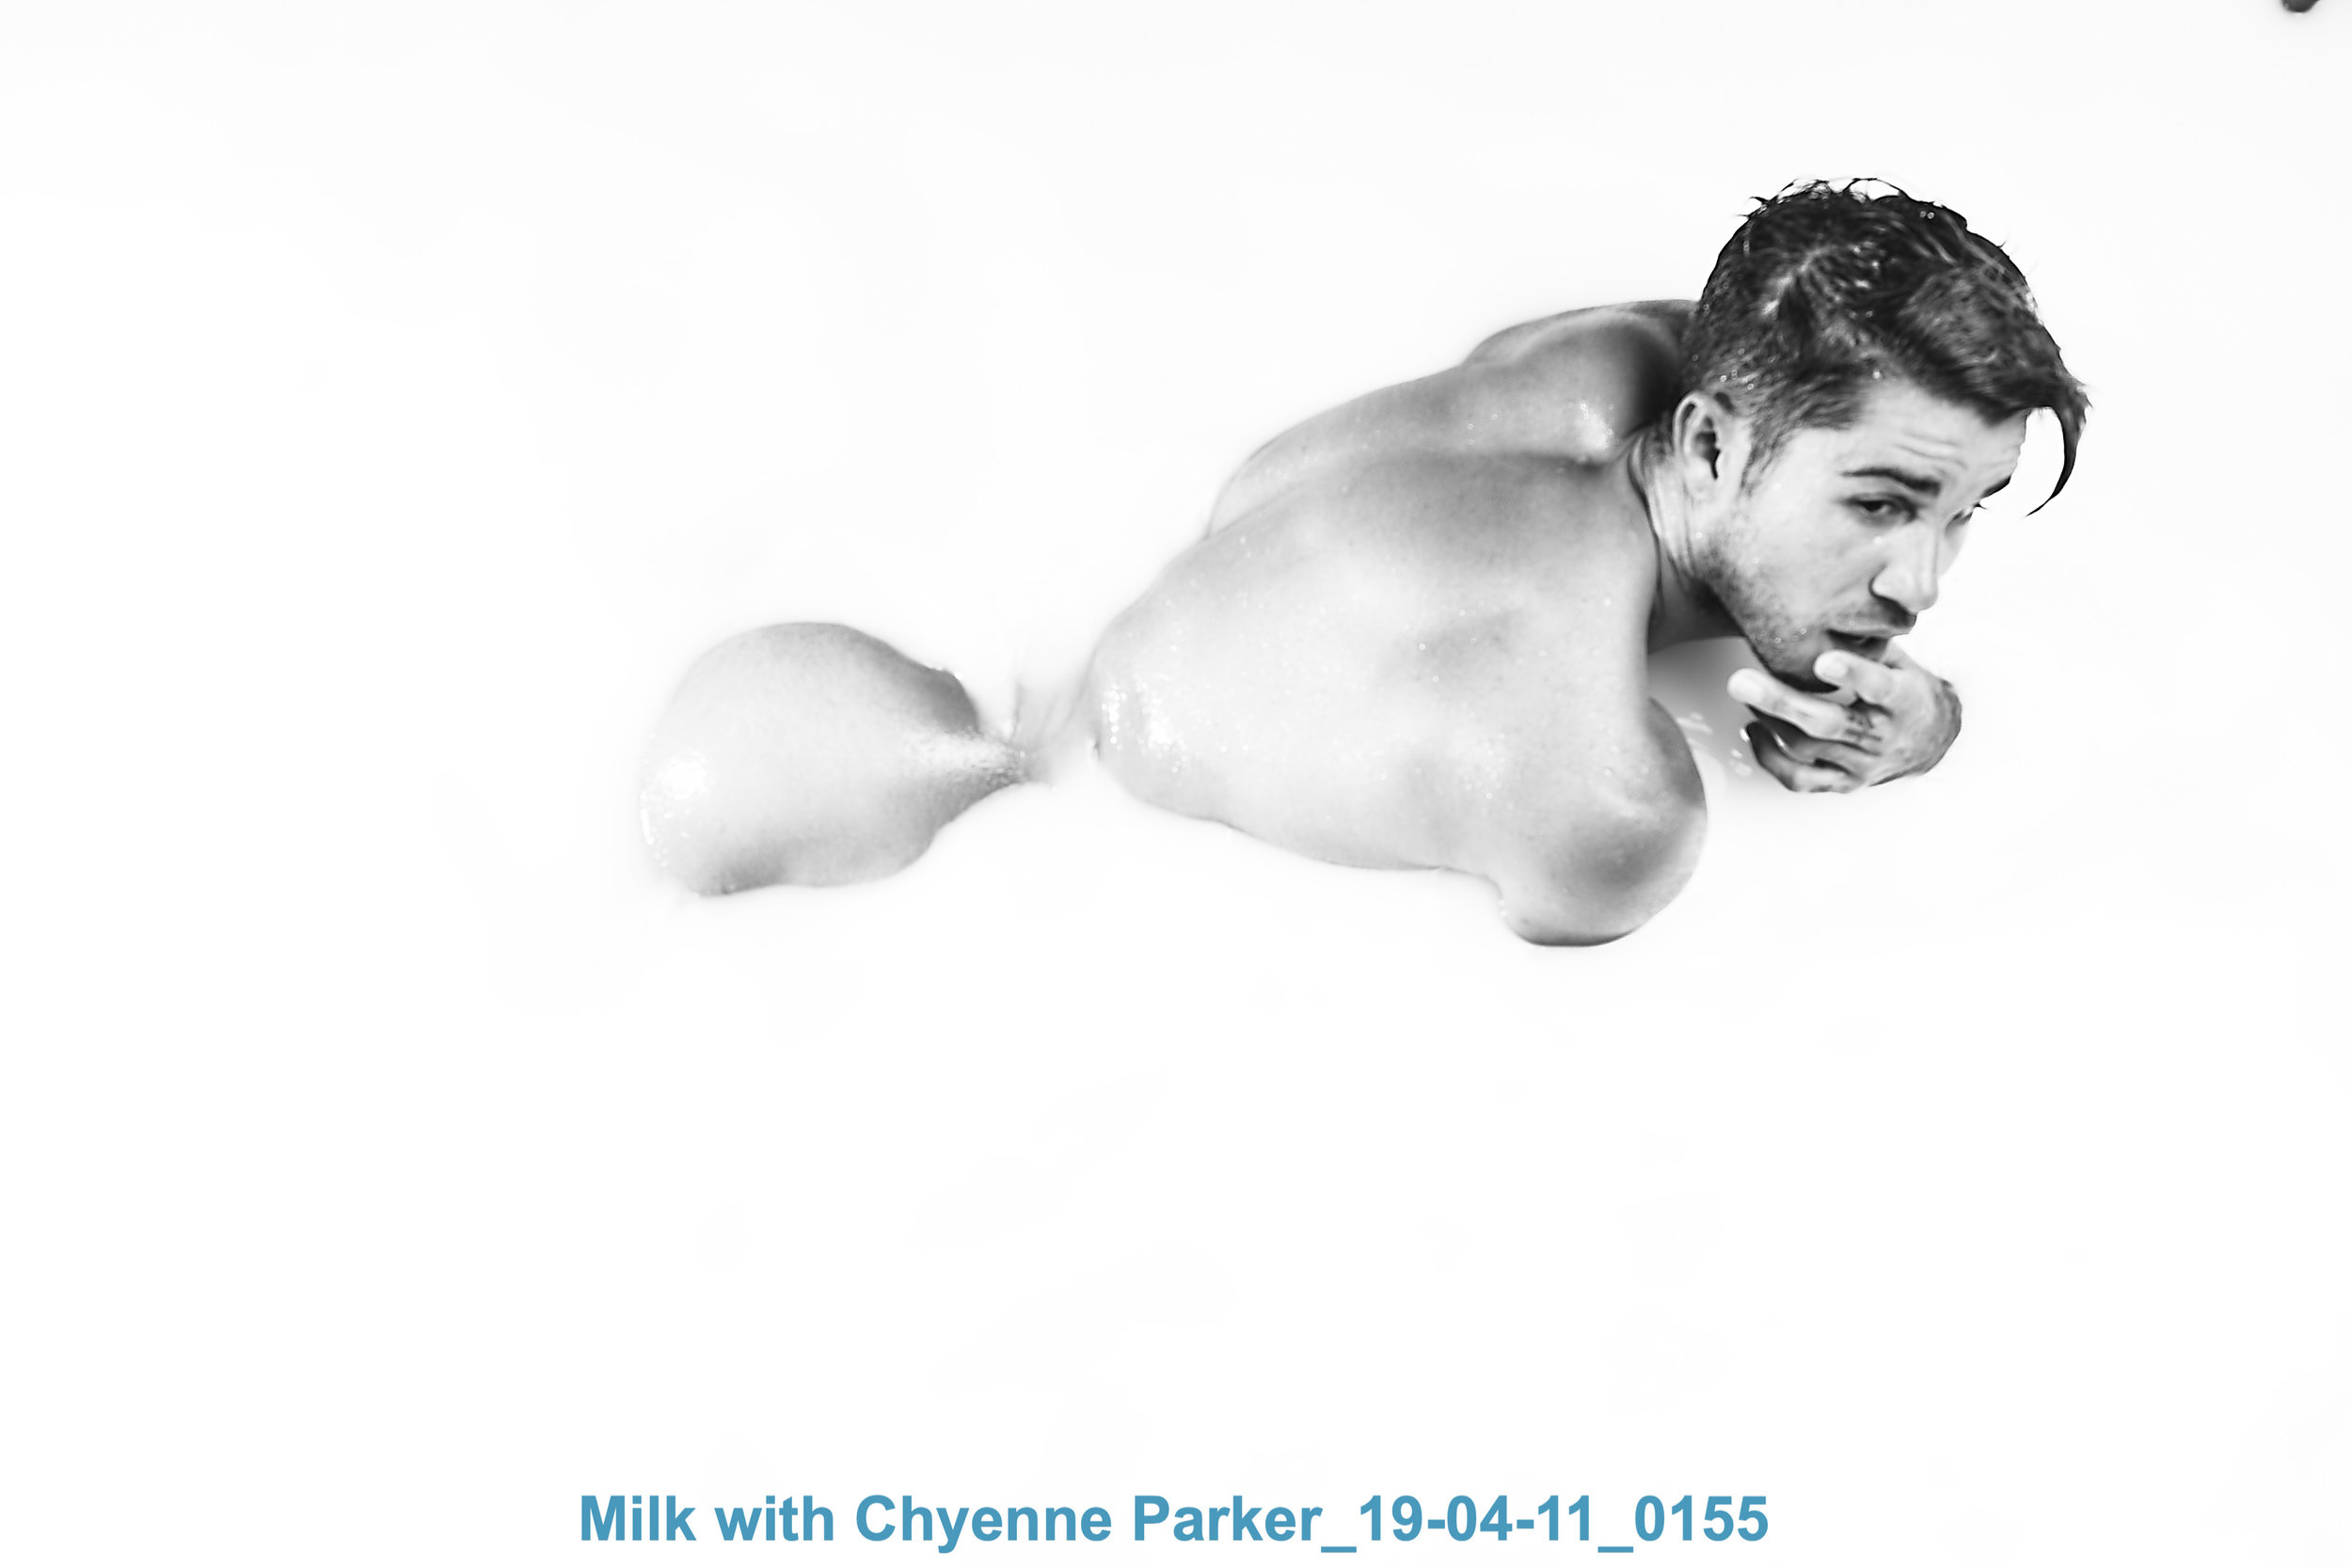 Milk with Chyenne Parker_19-04-11_0155.jpg